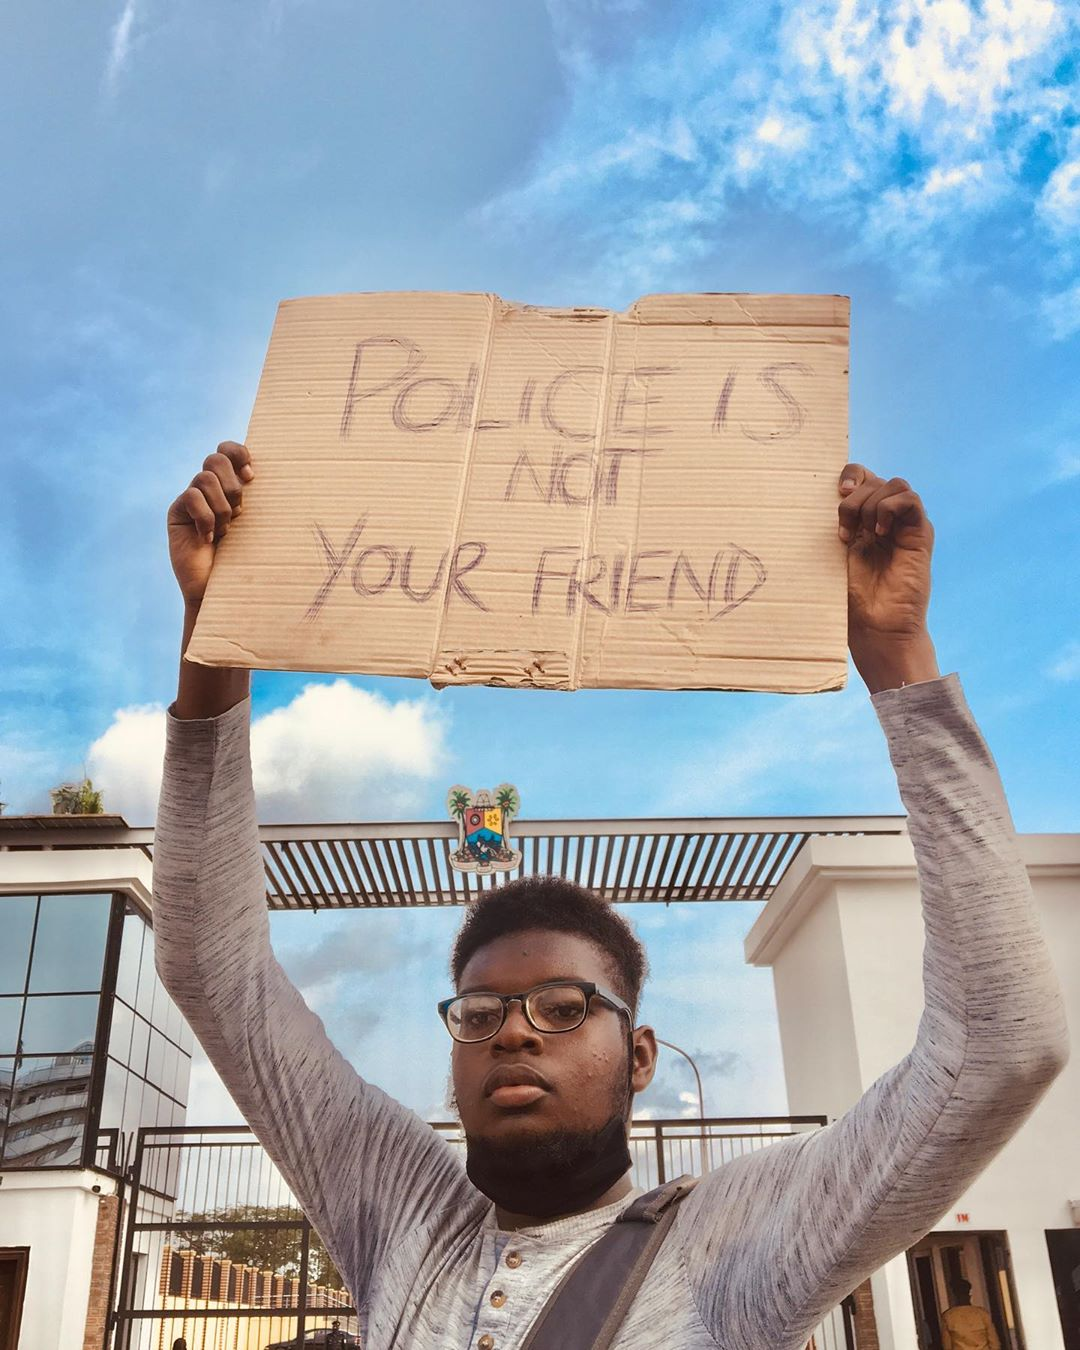 THE POLICE IS NOT YOUR FRIEND